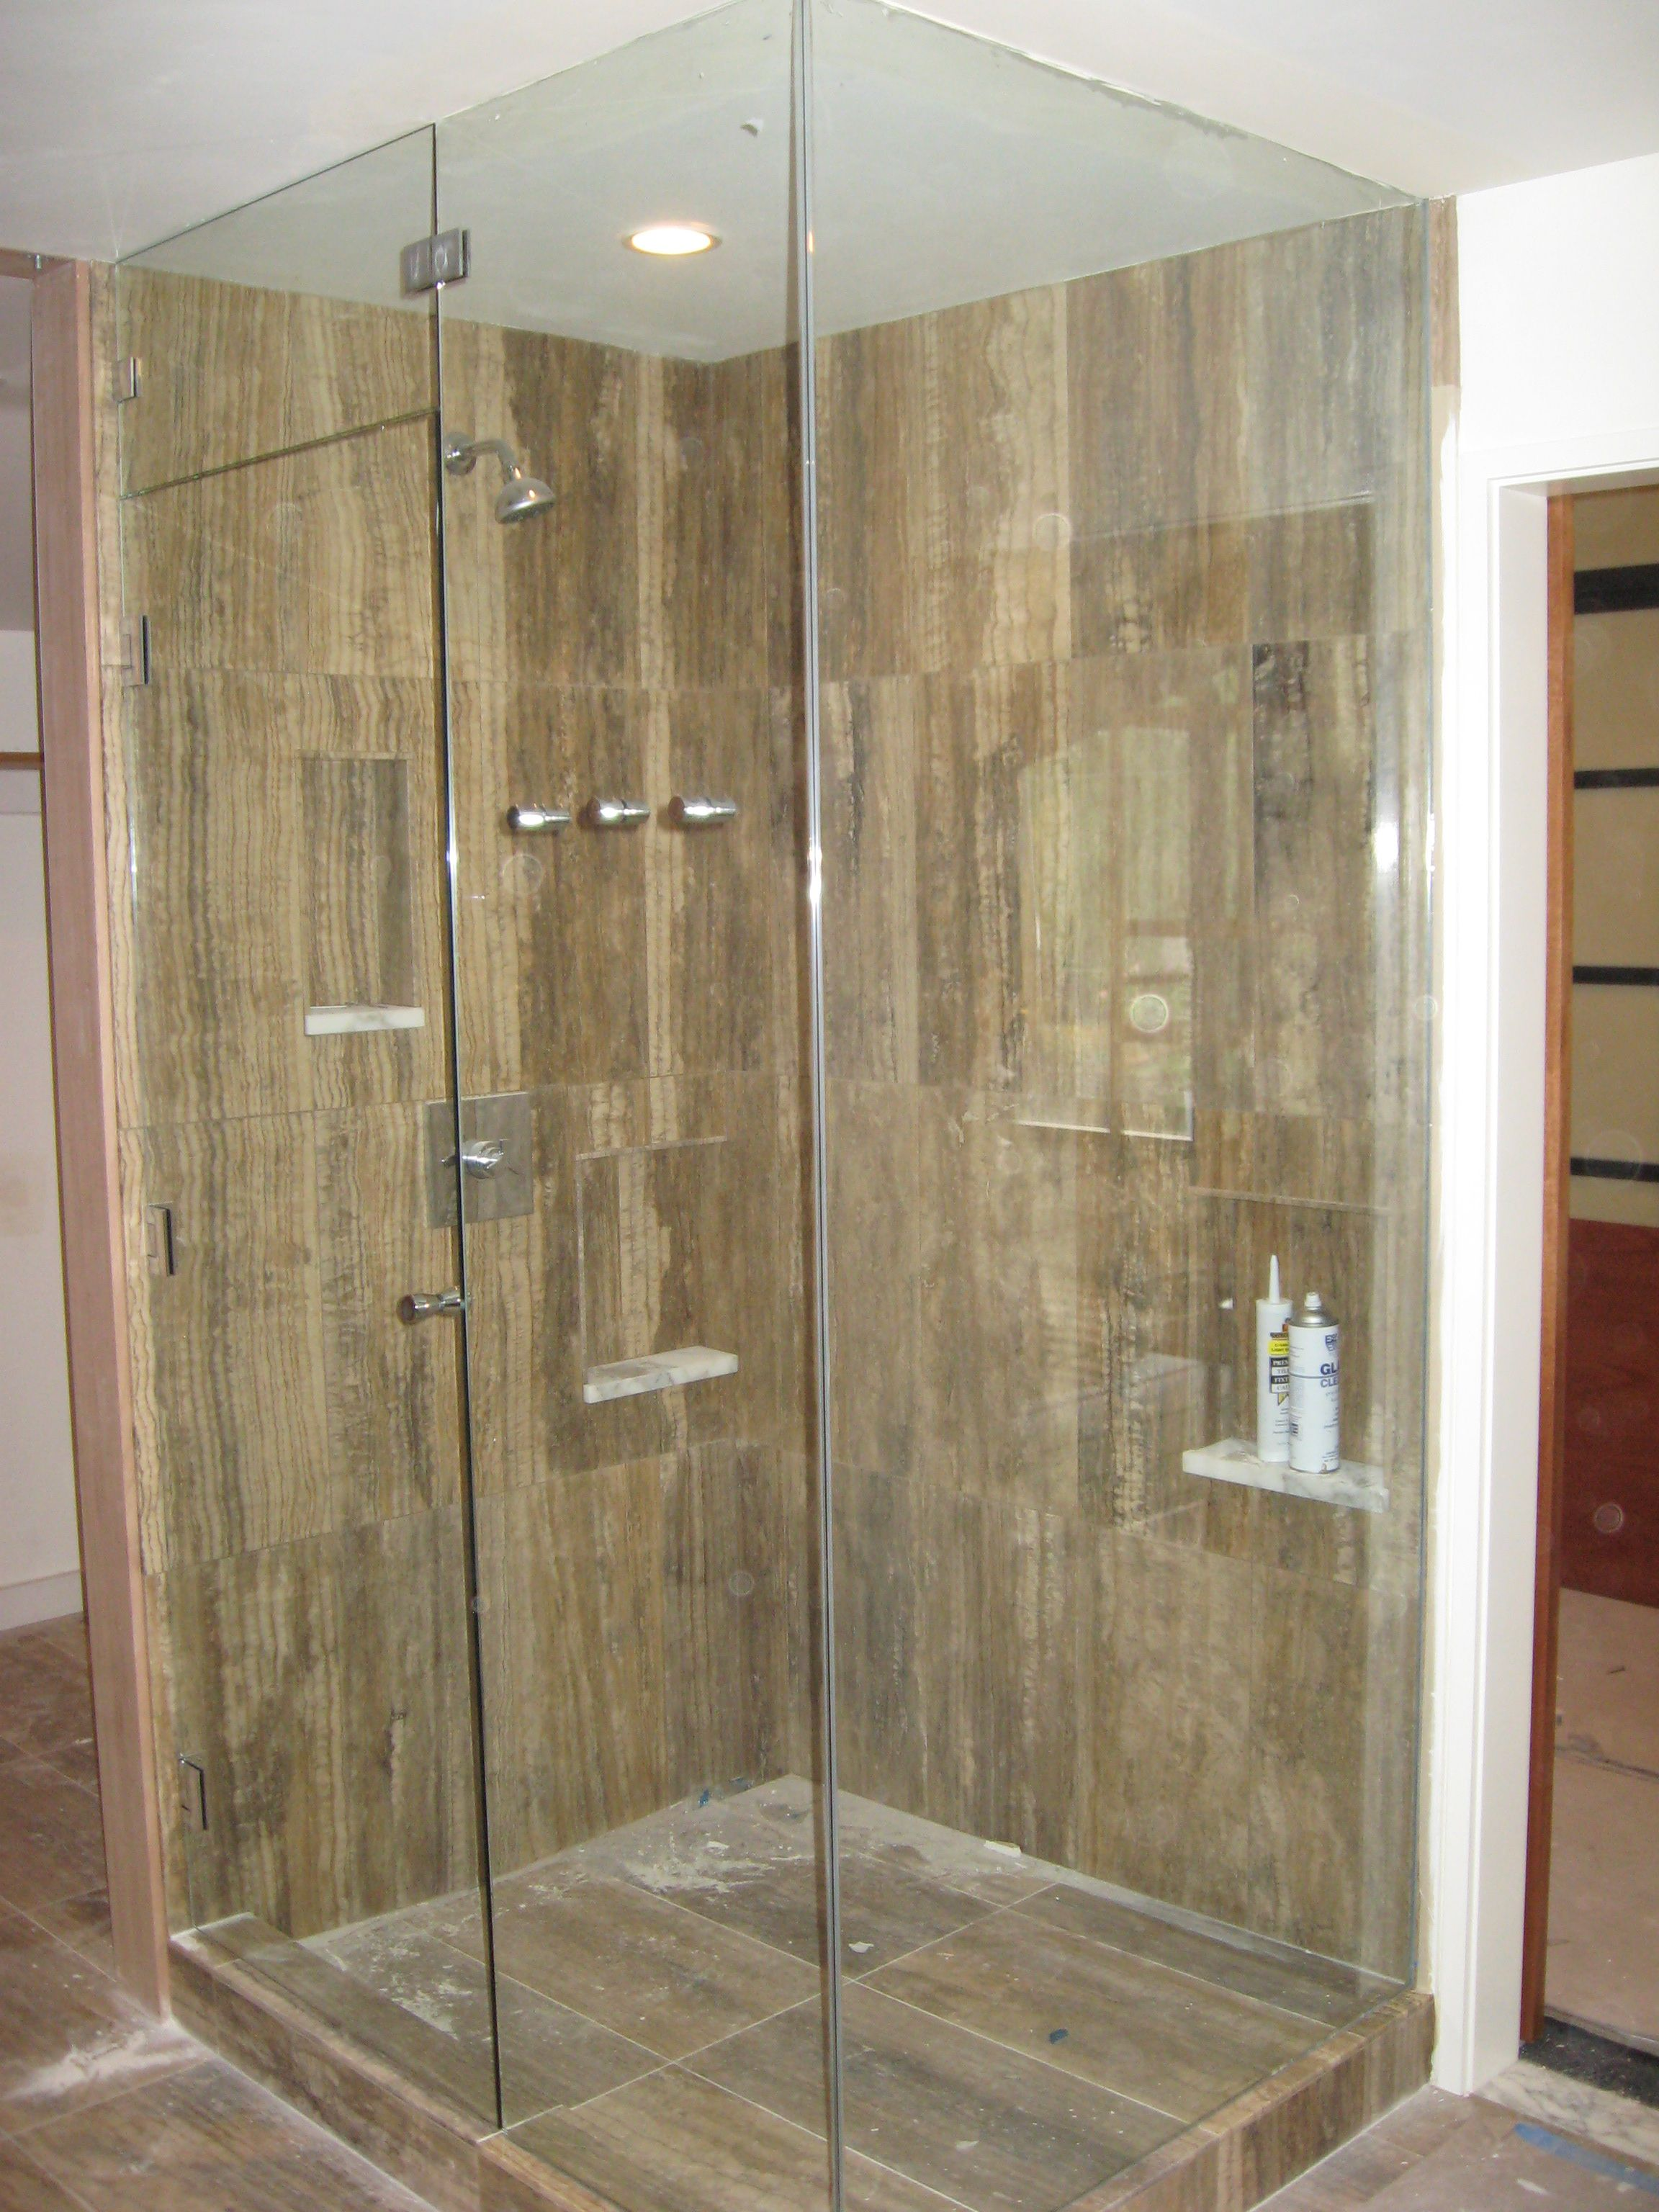 Put Rain X On Your Shower Doors To Make Water Bounce Right Off